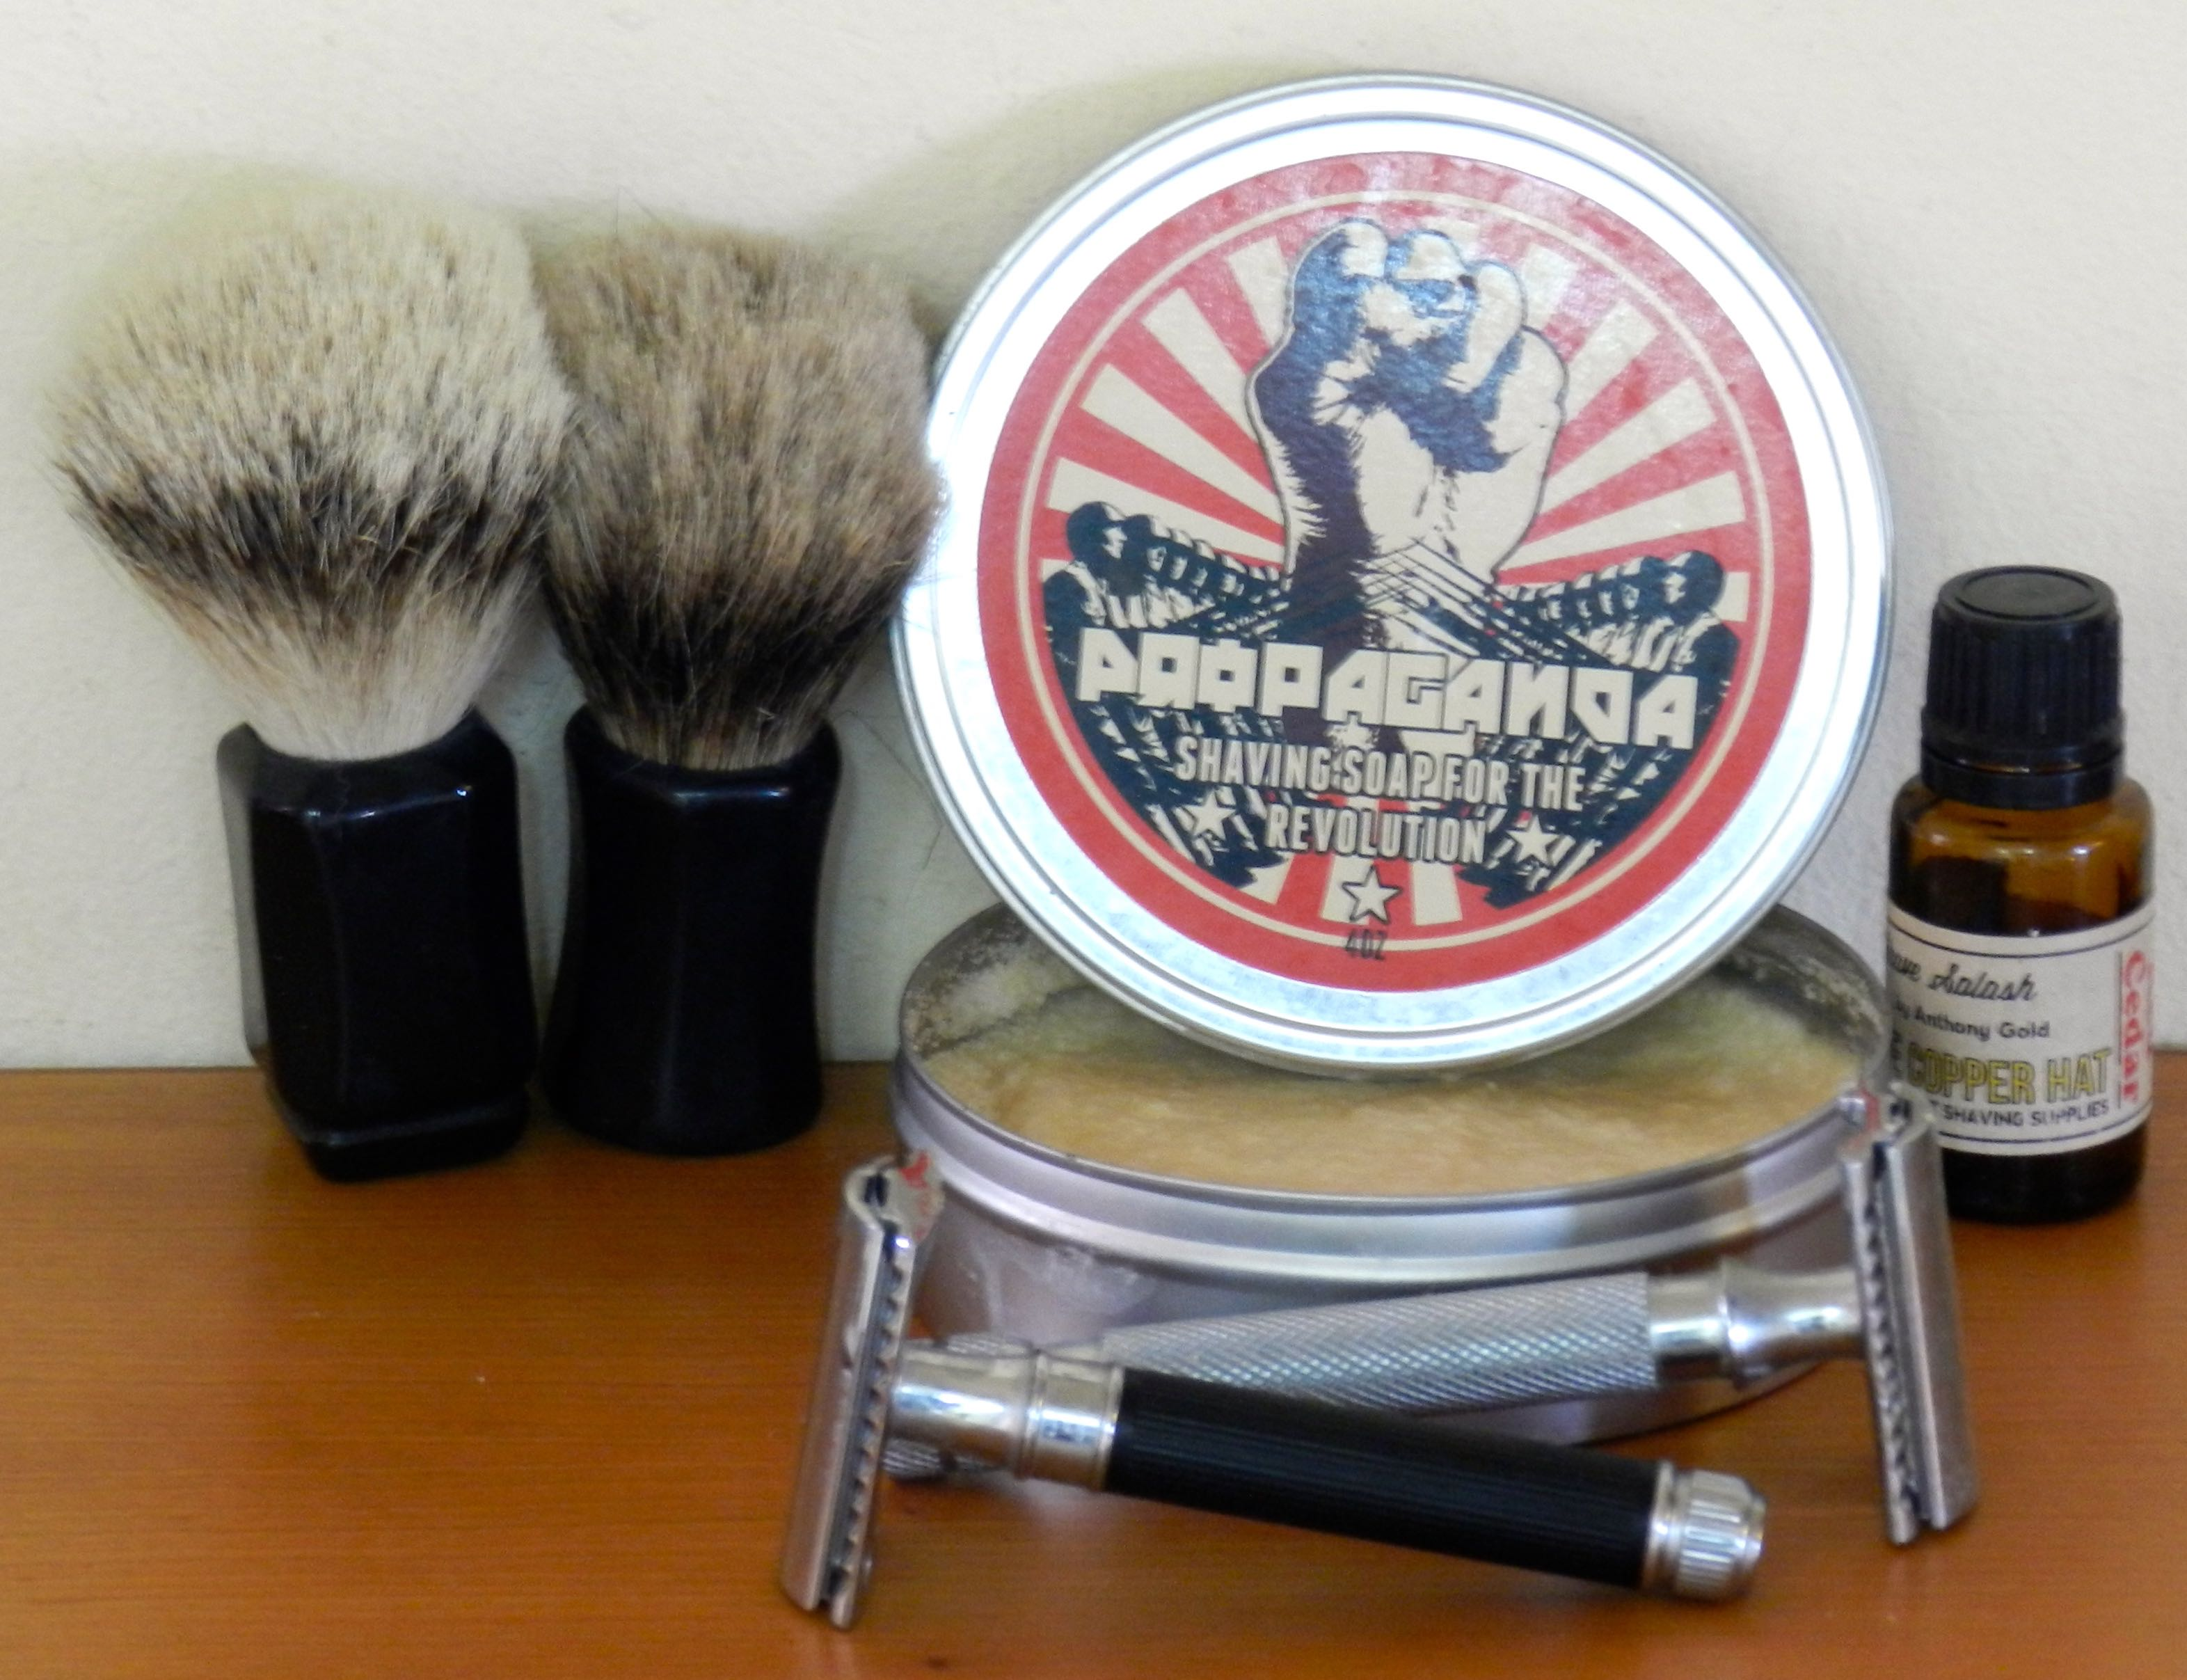 comparison whipped dog brushes silvertip and high mountain badger